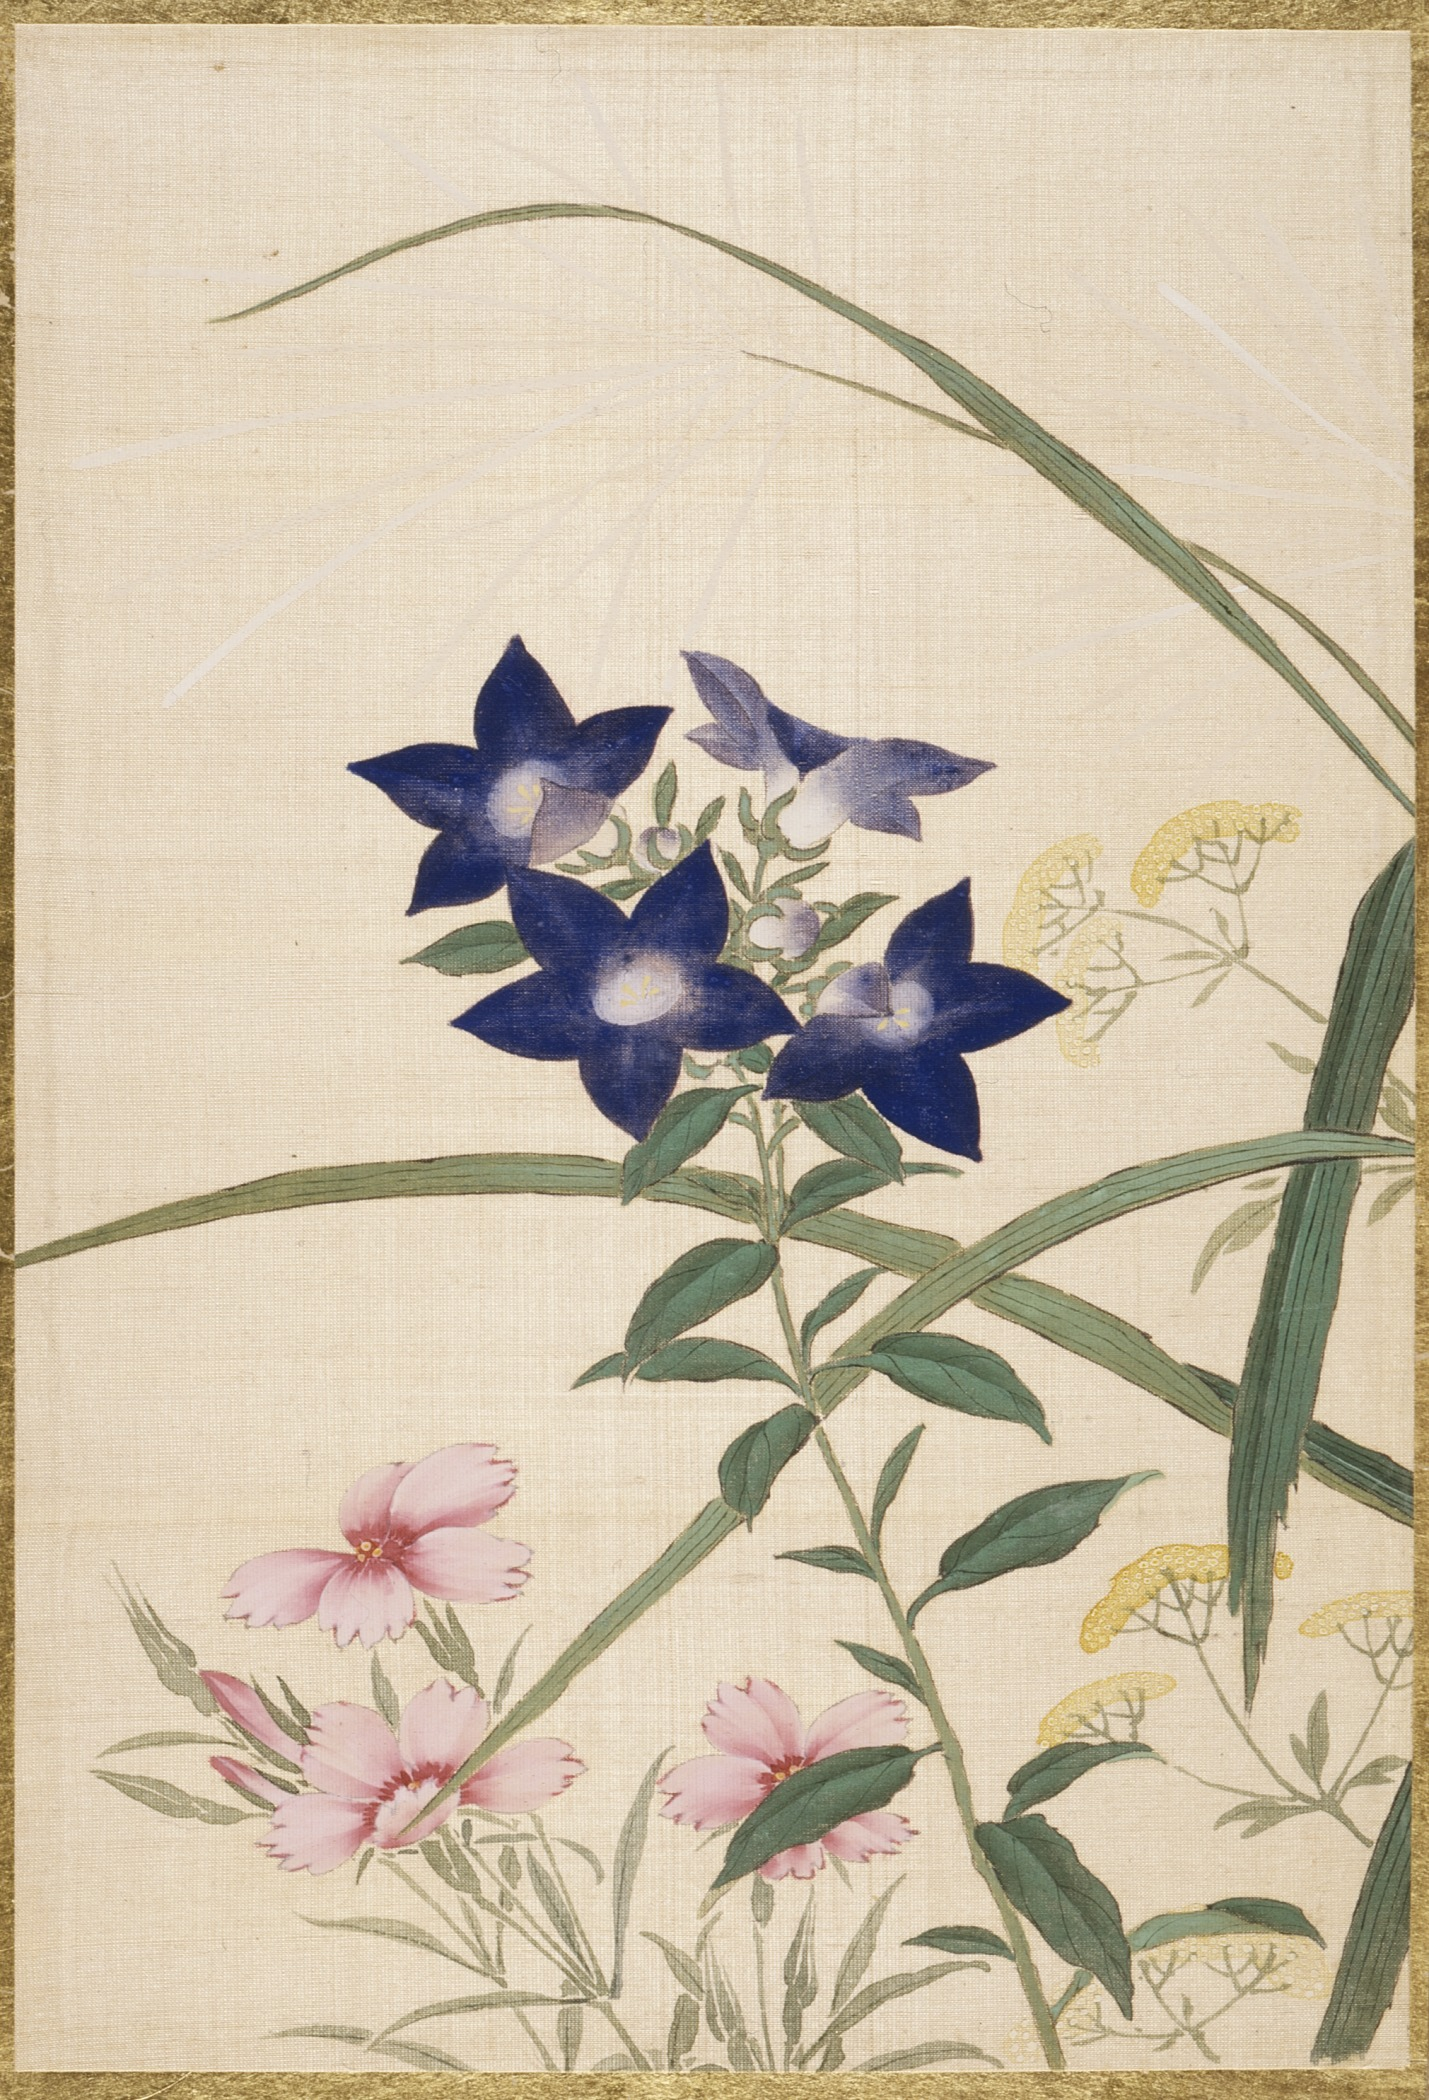 https://upload.wikimedia.org/wikipedia/commons/6/6b/Pictures_of_Flowers_and_Birds_LACMA_M.85.99_%2821_of_25%29.jpg